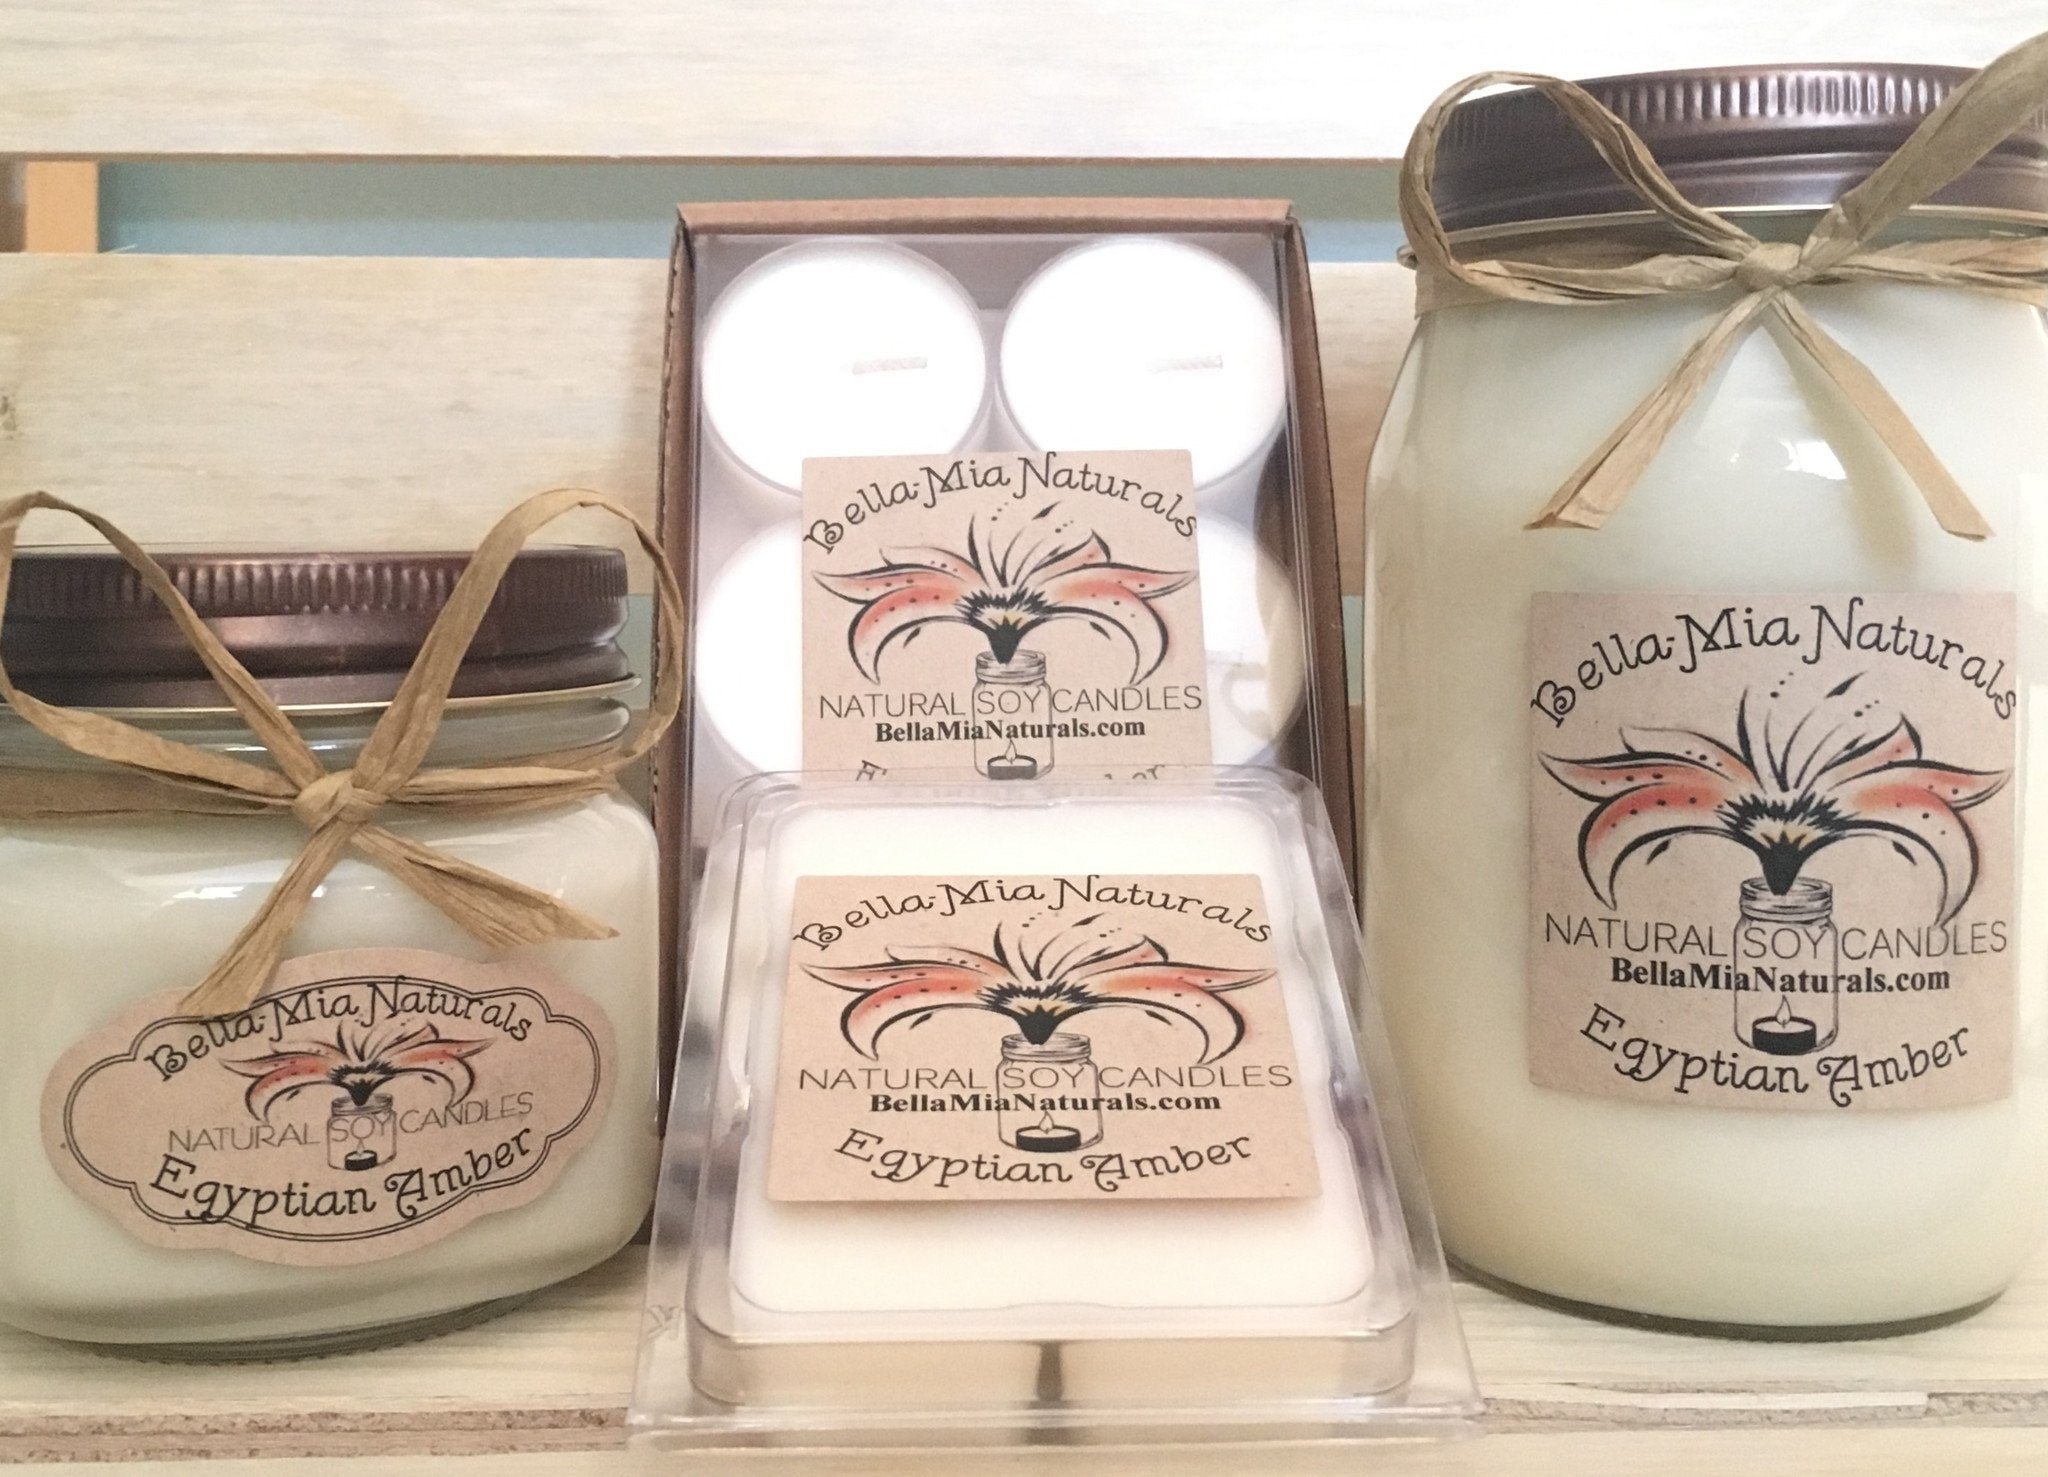 Egyptian-Amber Natural Hand Poured Soy Candles & Melts -  - Bella-Mia Naturals All Natural Soy Candles & Lip Balms - 1